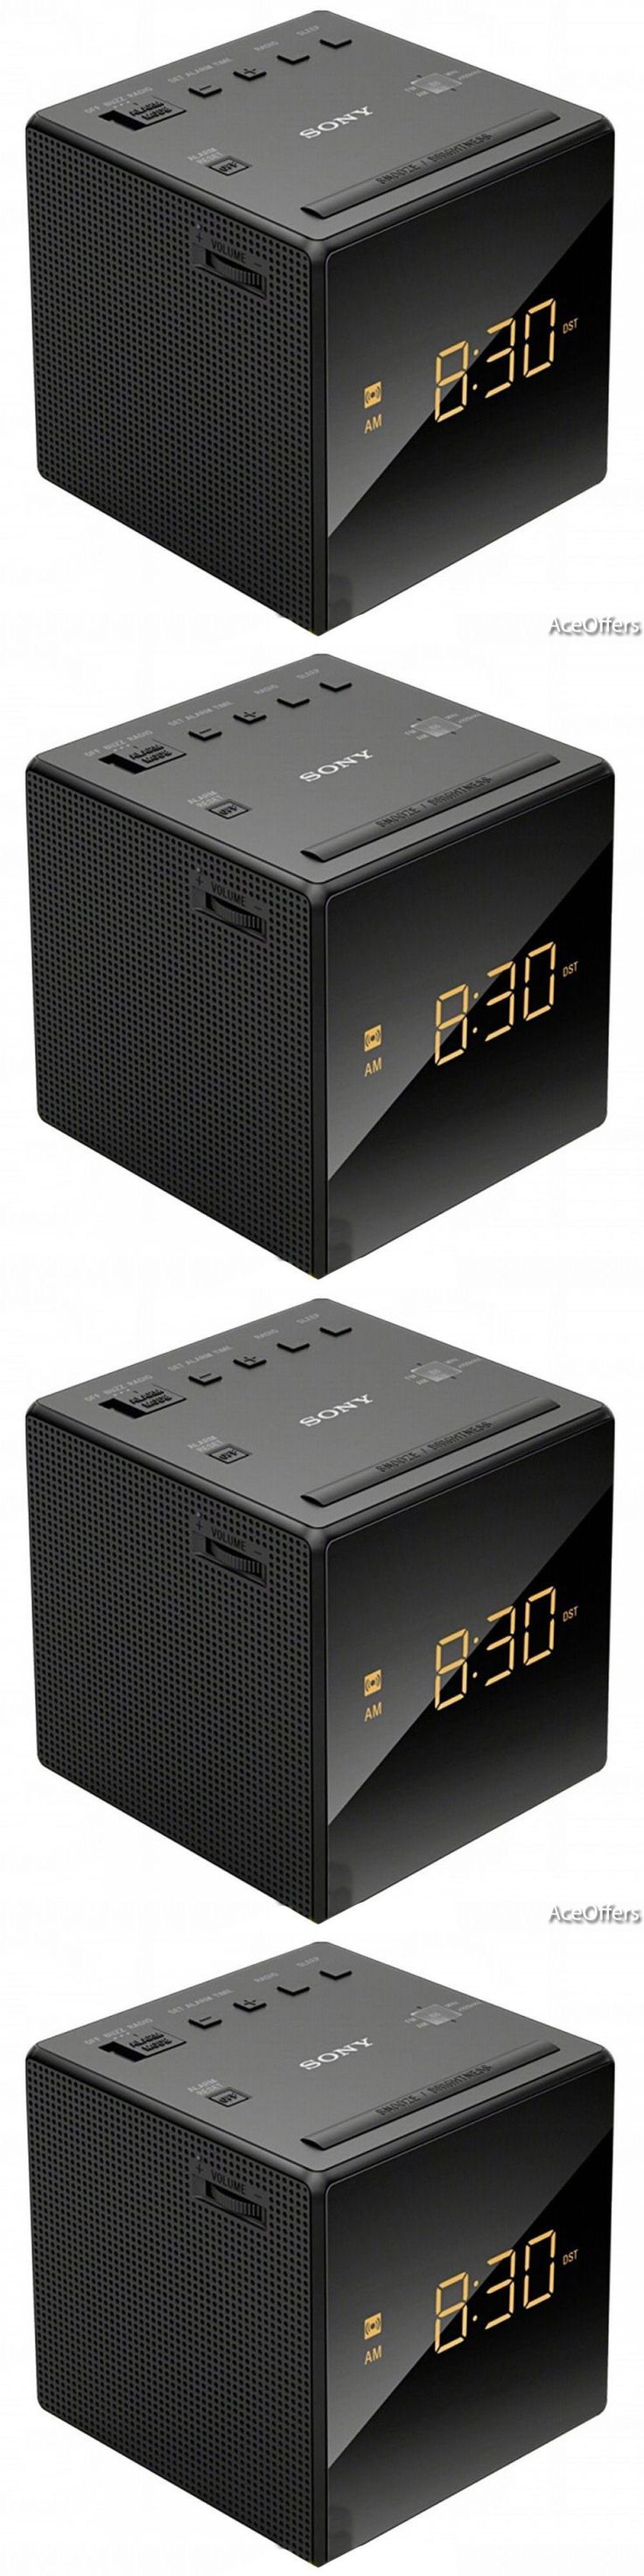 Digital Clocks and Clock Radios: Alarm Clock With Radio Sony Led Black Buzzer Corded Electric Battery Backup New BUY IT NOW ONLY: $31.99